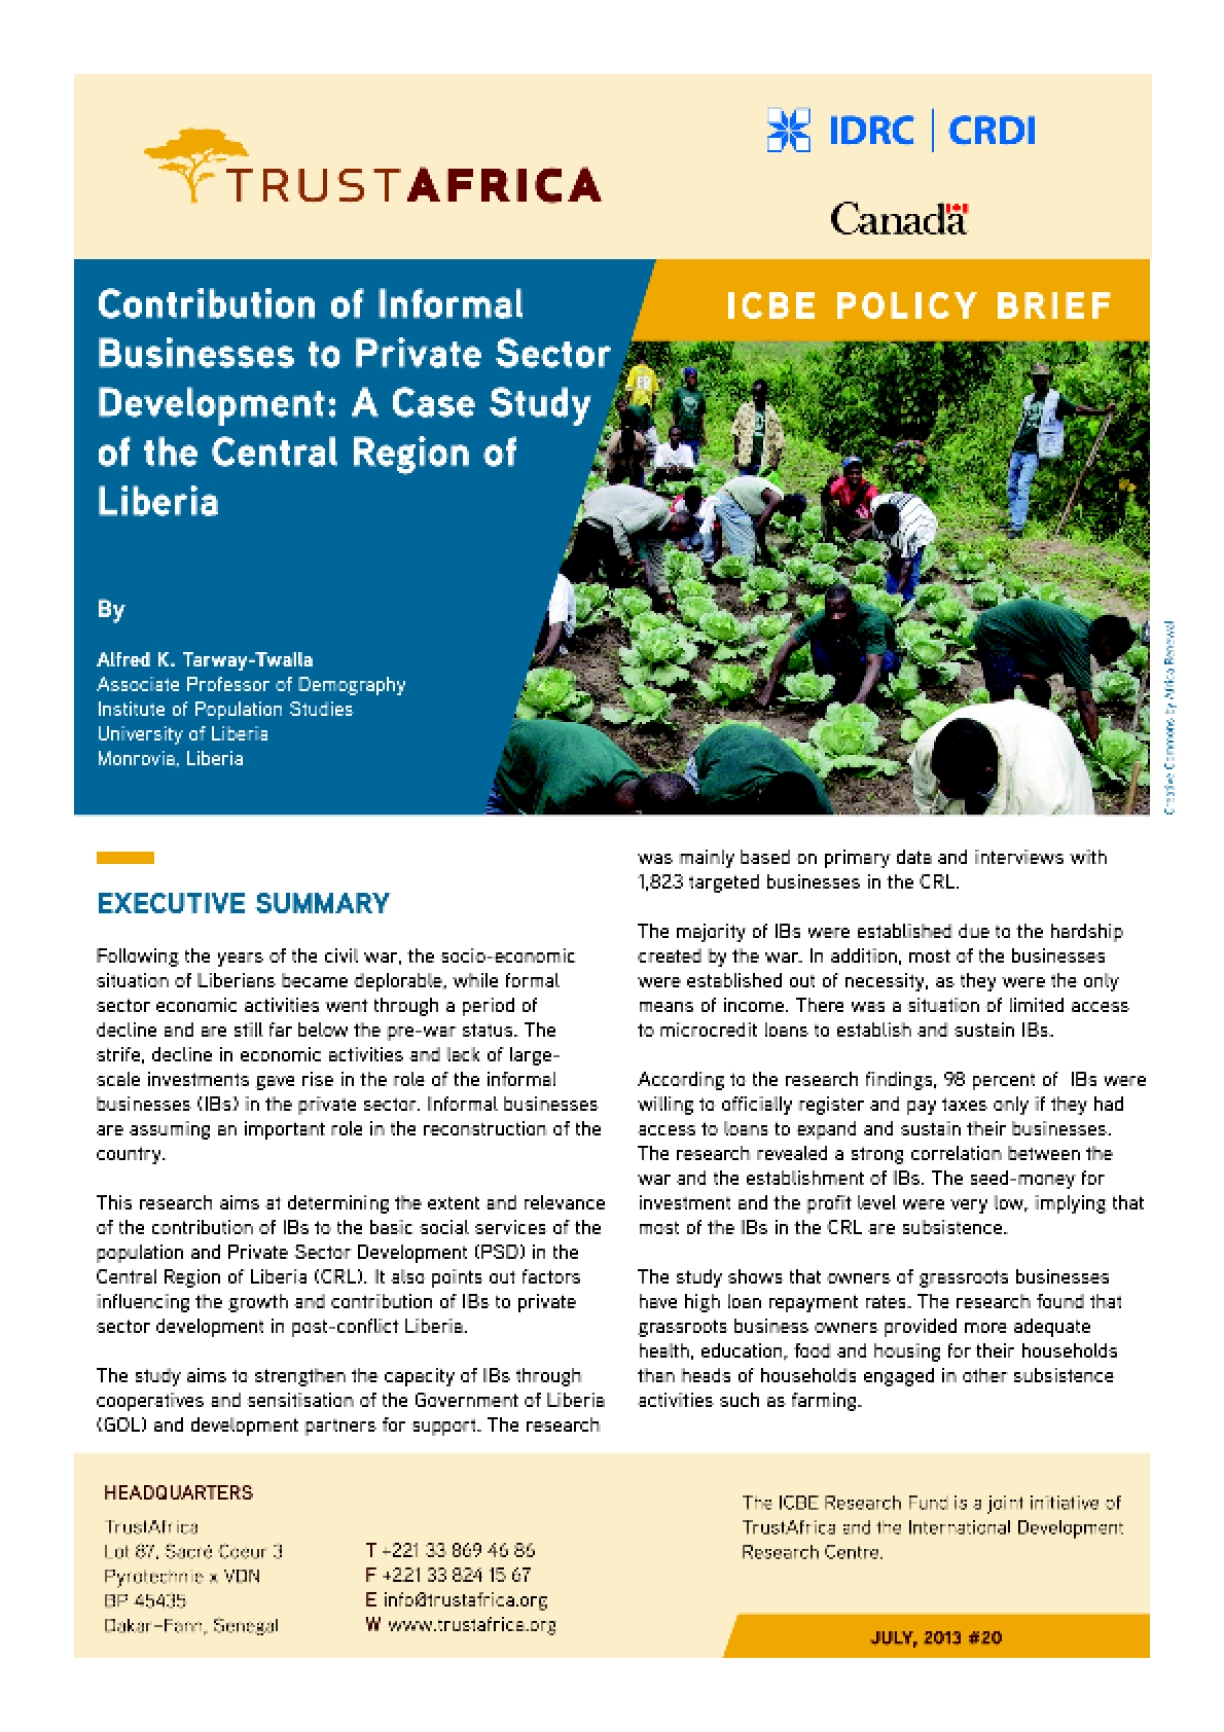 Contribution of Informal Businesses to Private Sector Development: A Case Study of the Central Region of Liberia